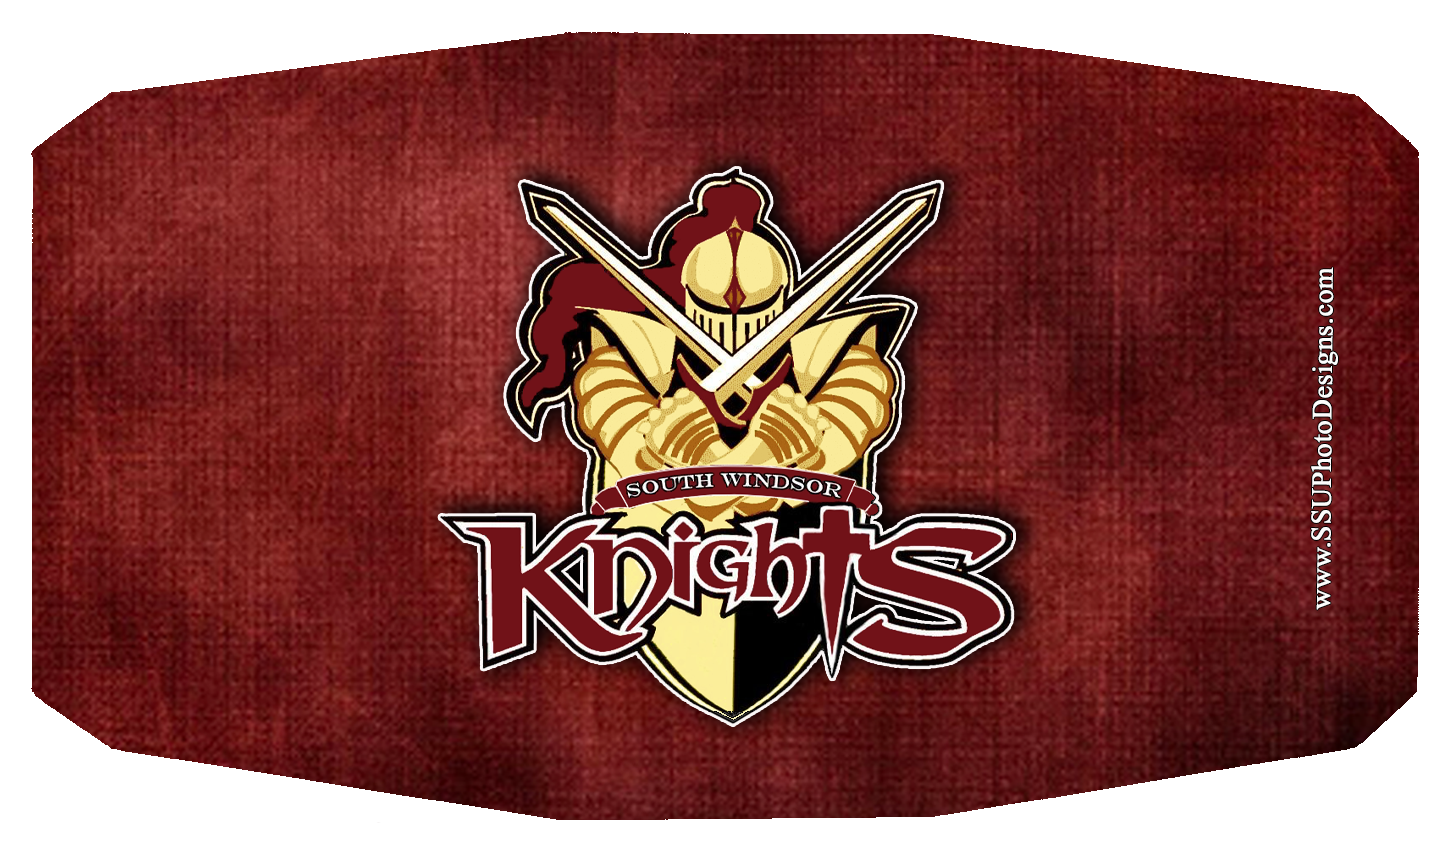 SWKnights Hockey Masks